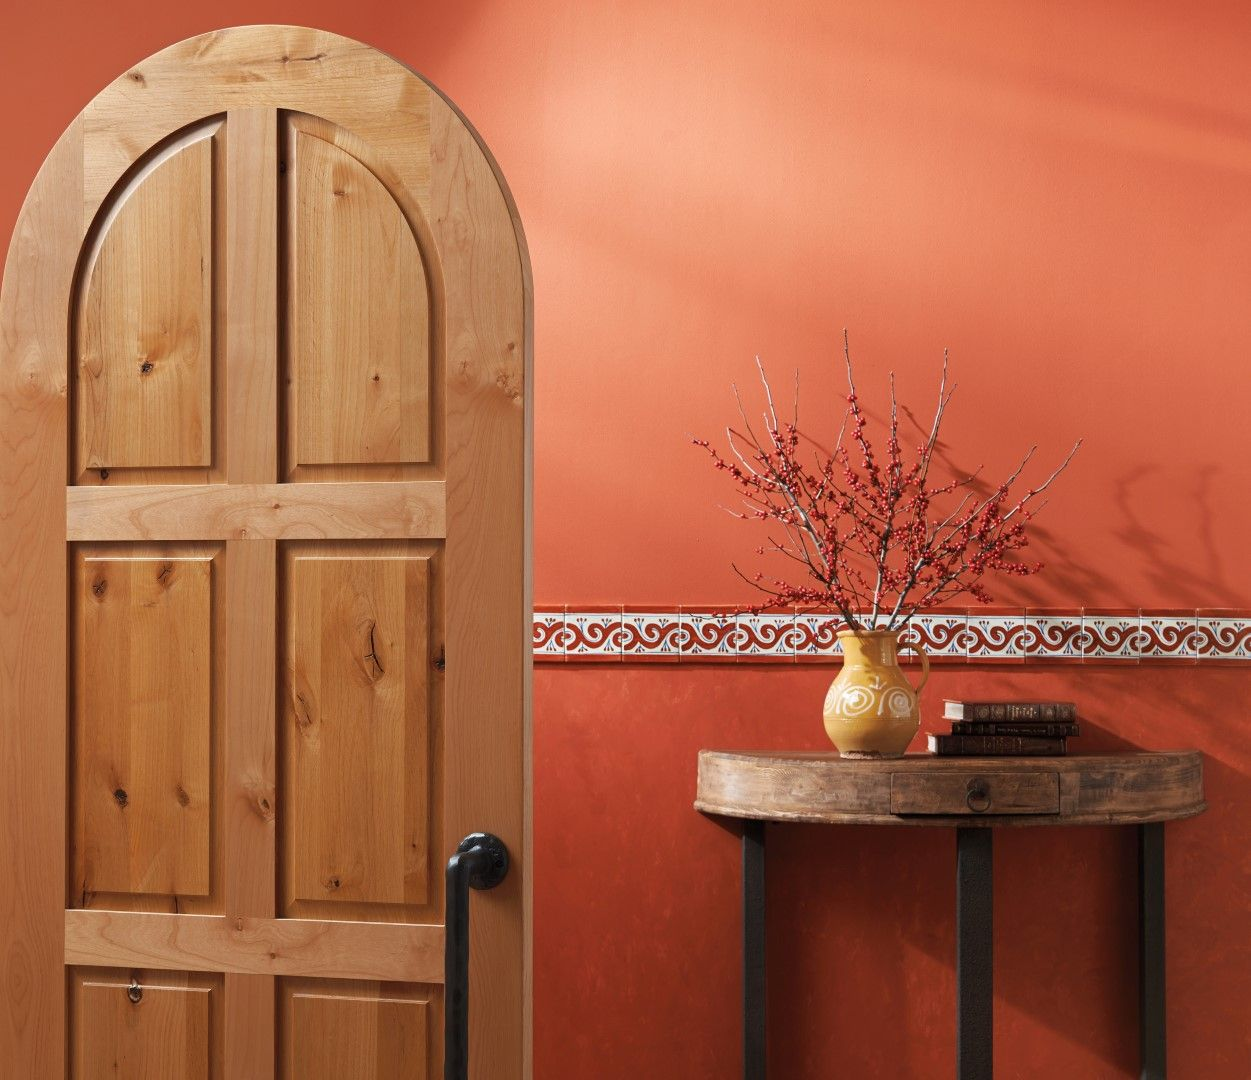 Trustile Mediterranean Door Collection Ts6090 Radius Top In Knotty Alder With Square Stick Ss Sticking And Raised A Panel